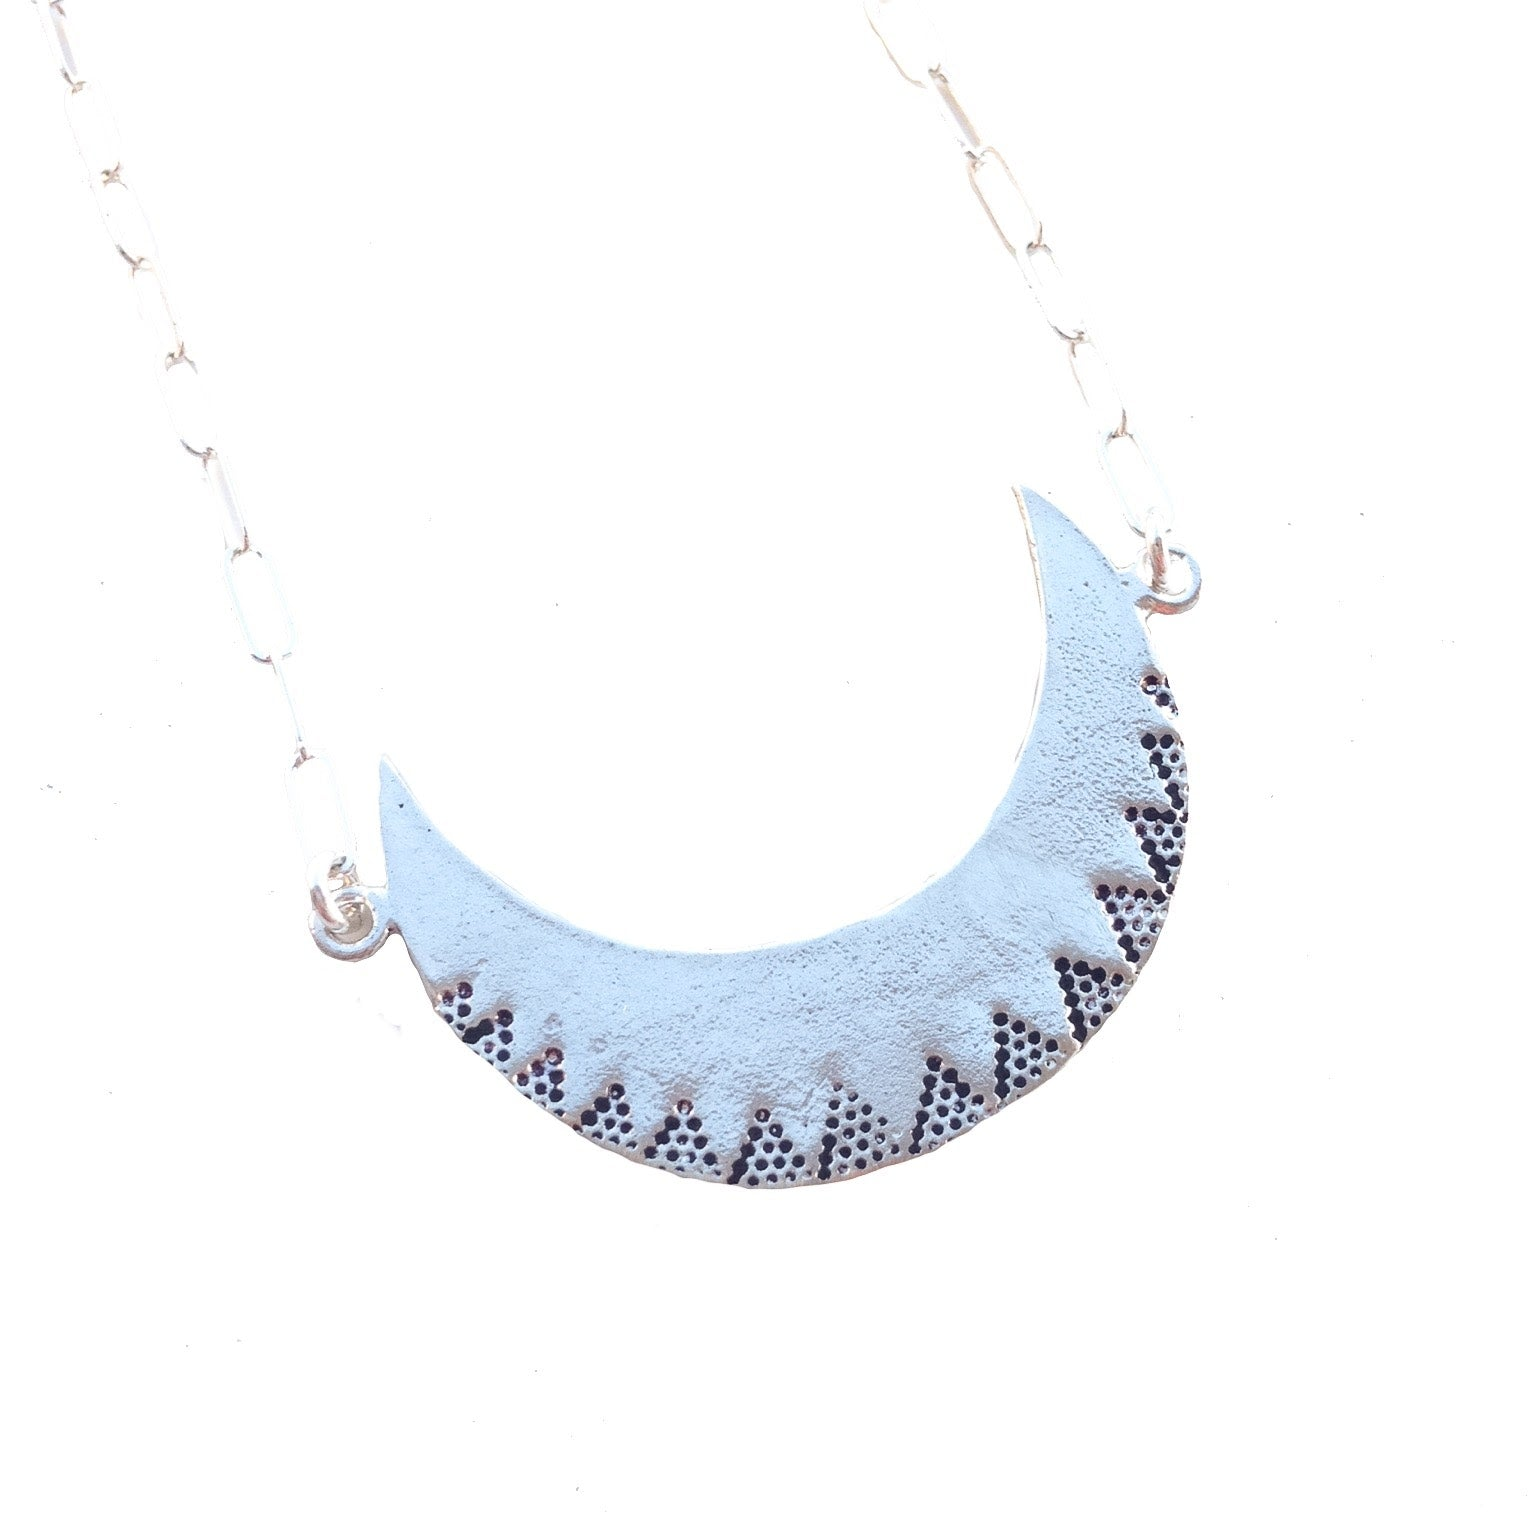 9b853f238 Danielle Hornyak Jewelry Large Crescent Moon Necklace